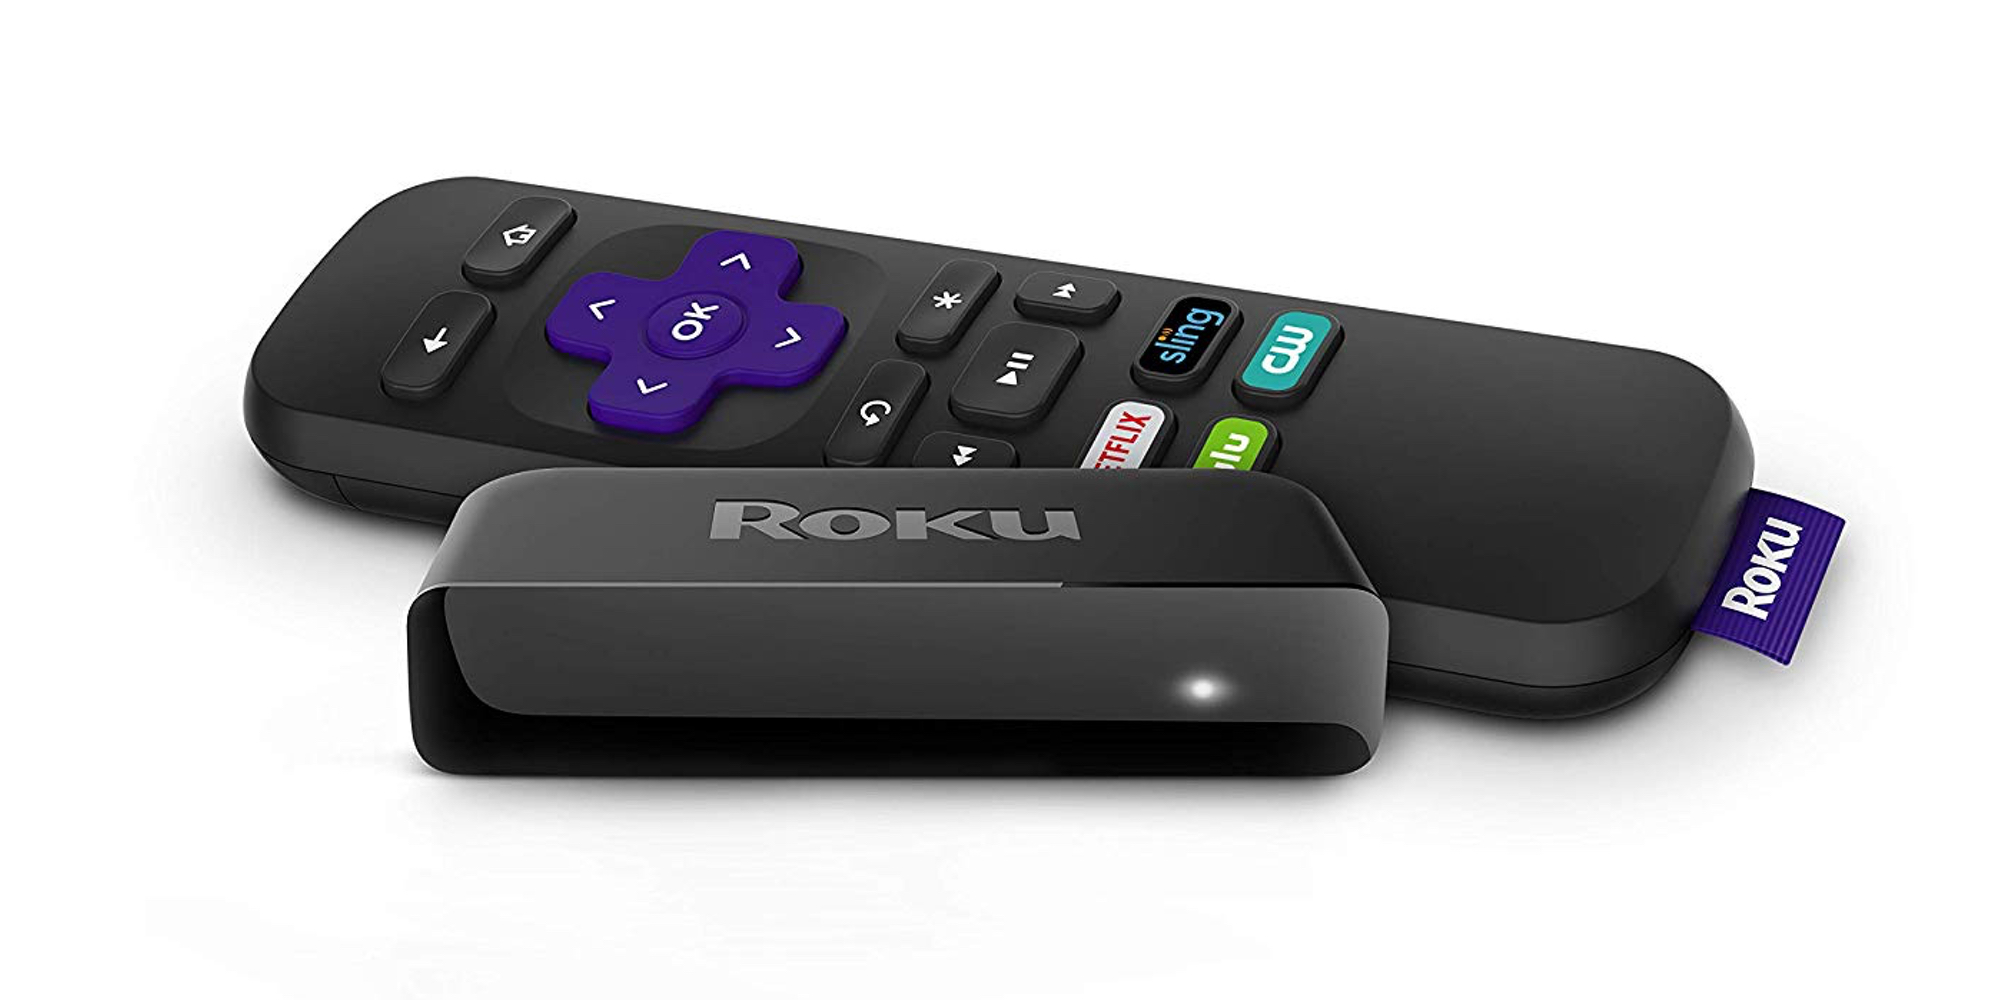 Add smart capabilities to your TV with the Roku Express Streaming Stick from $24